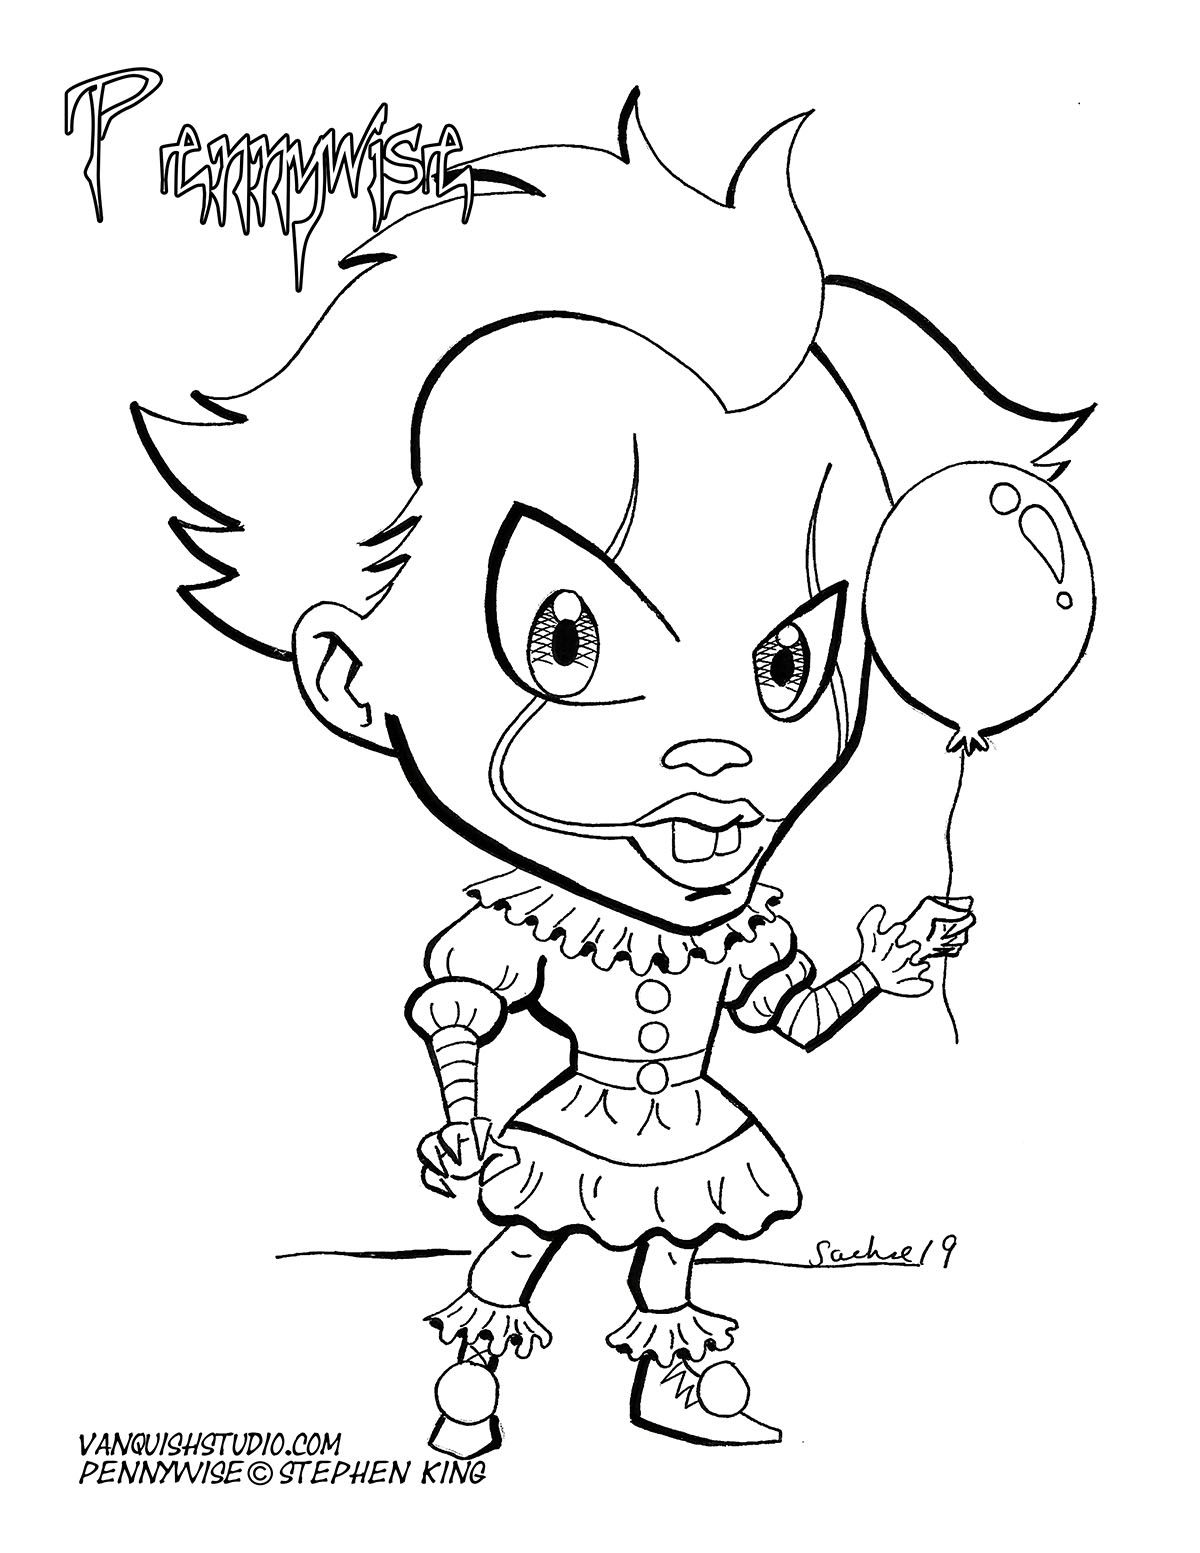 Coloring Pages Of Pennywise Trend